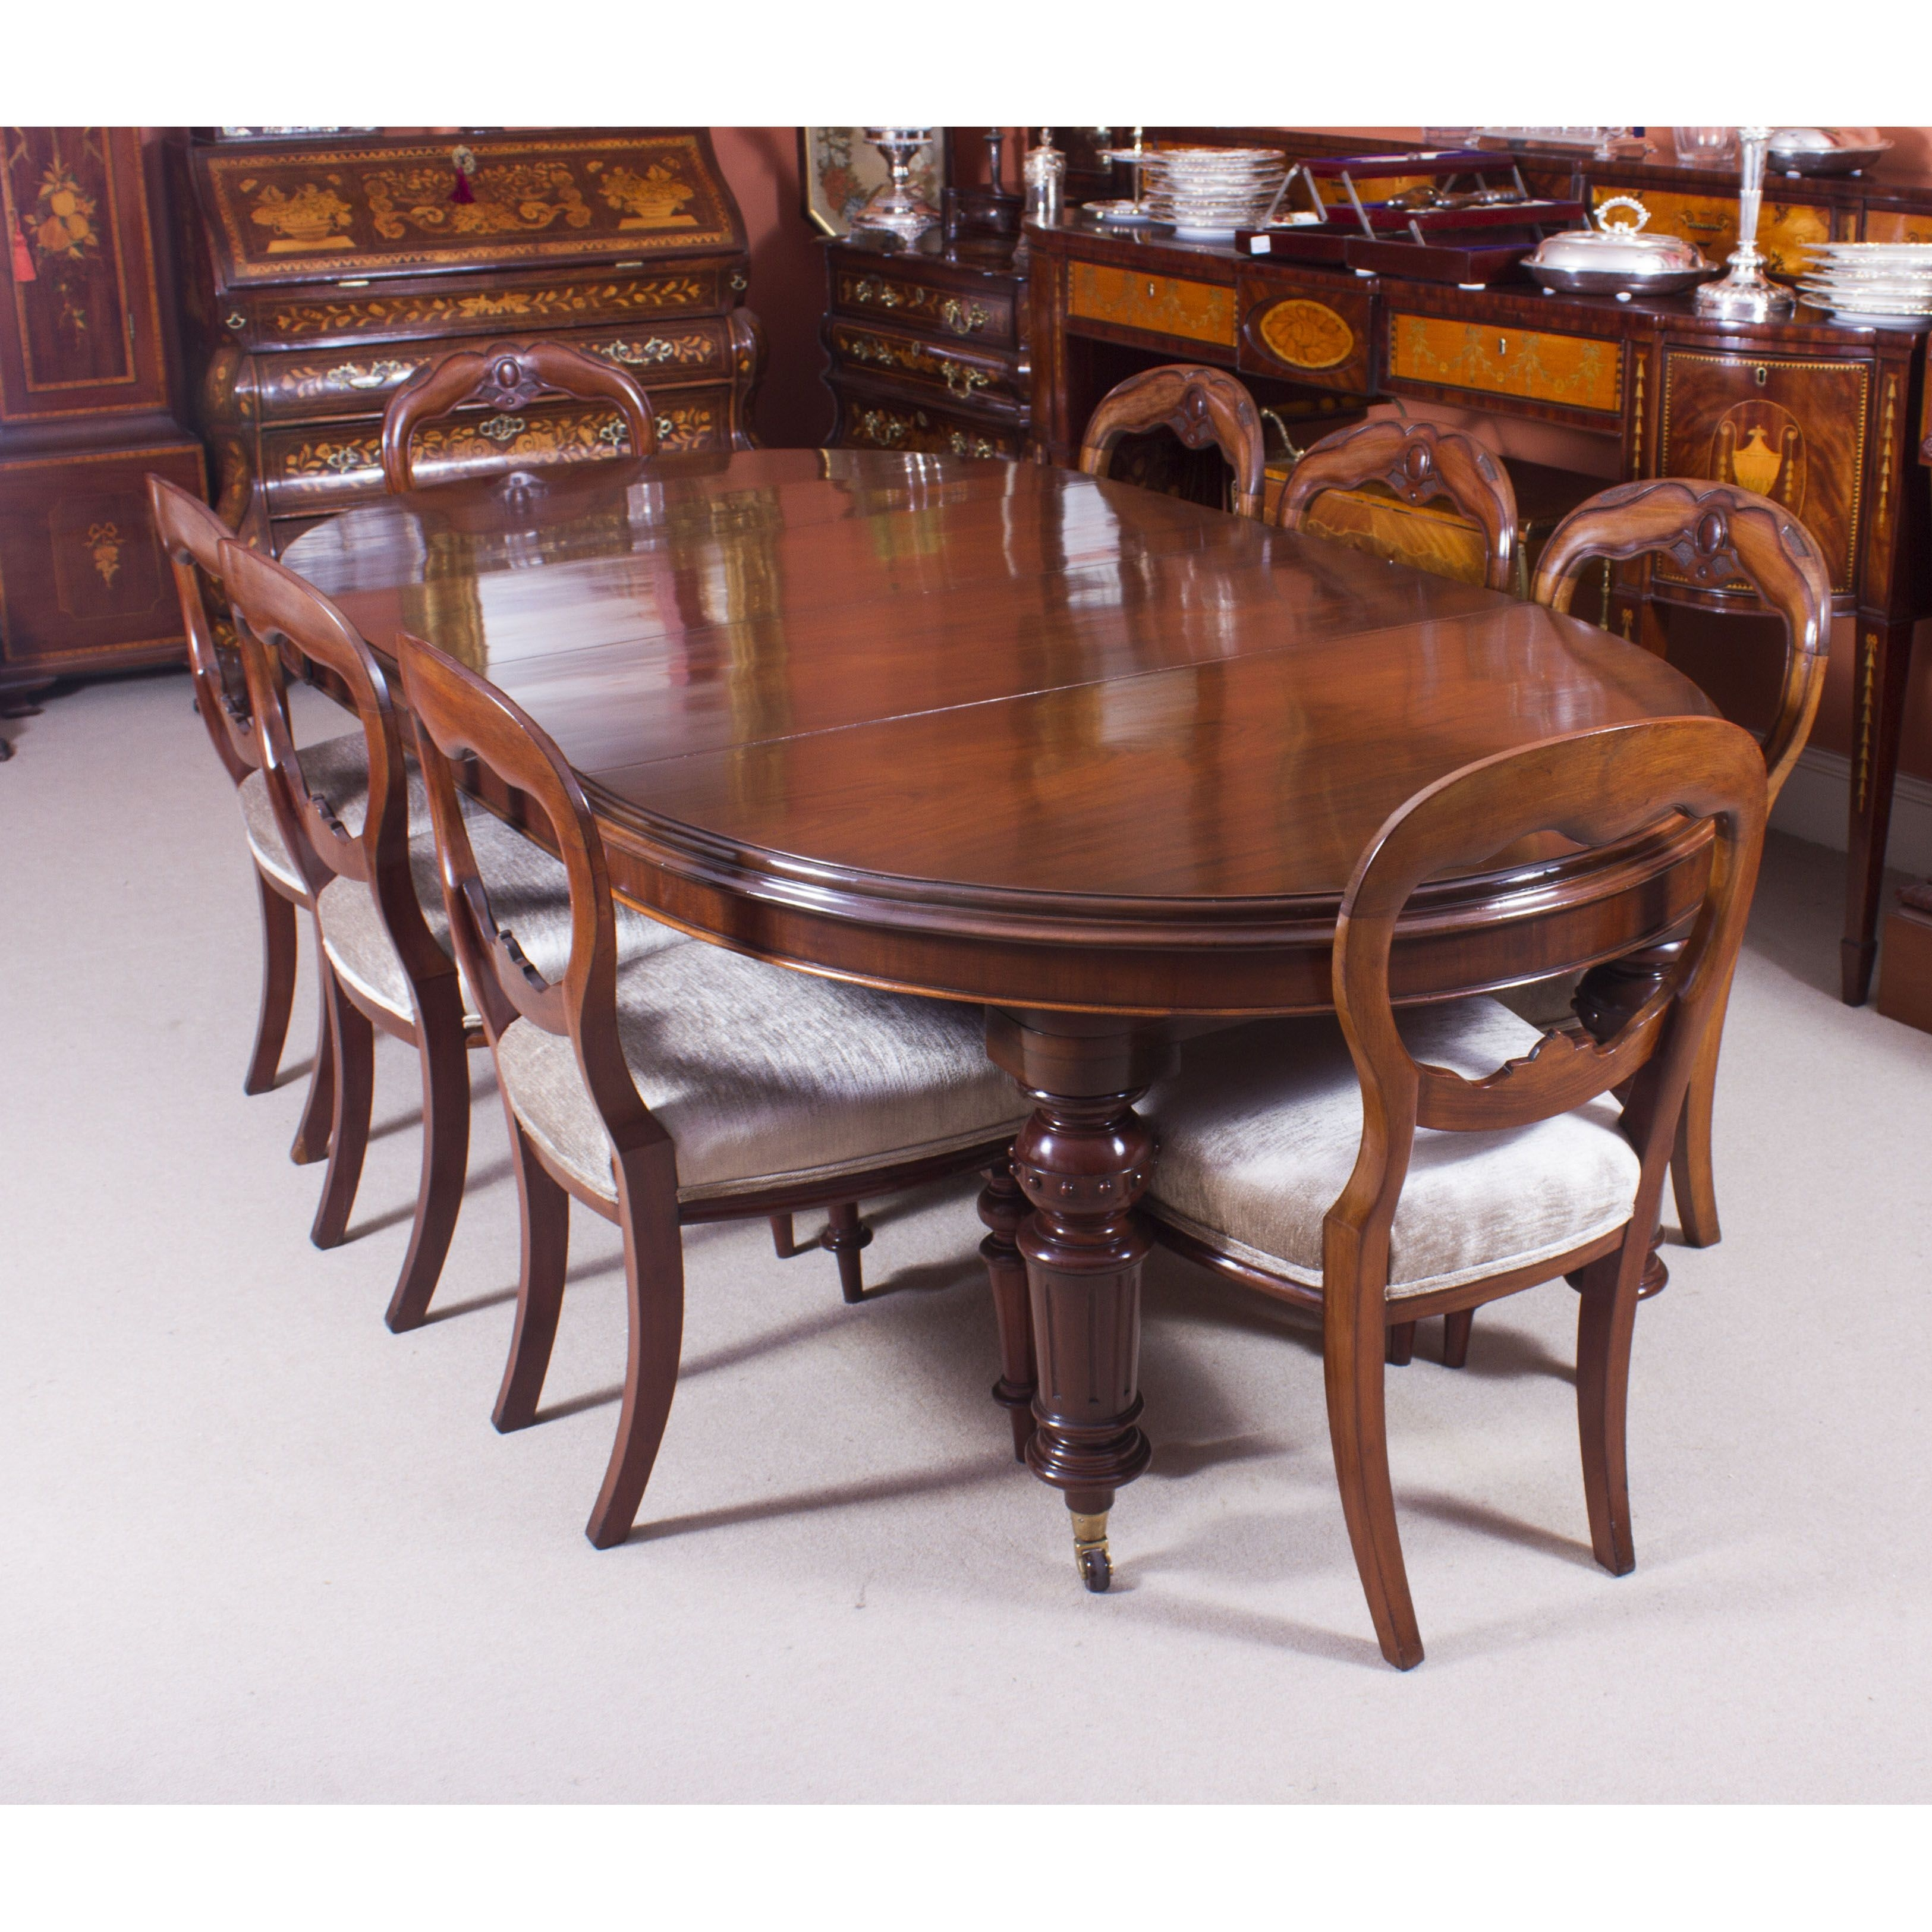 antique victorian oval dining table 8 antique chairs c